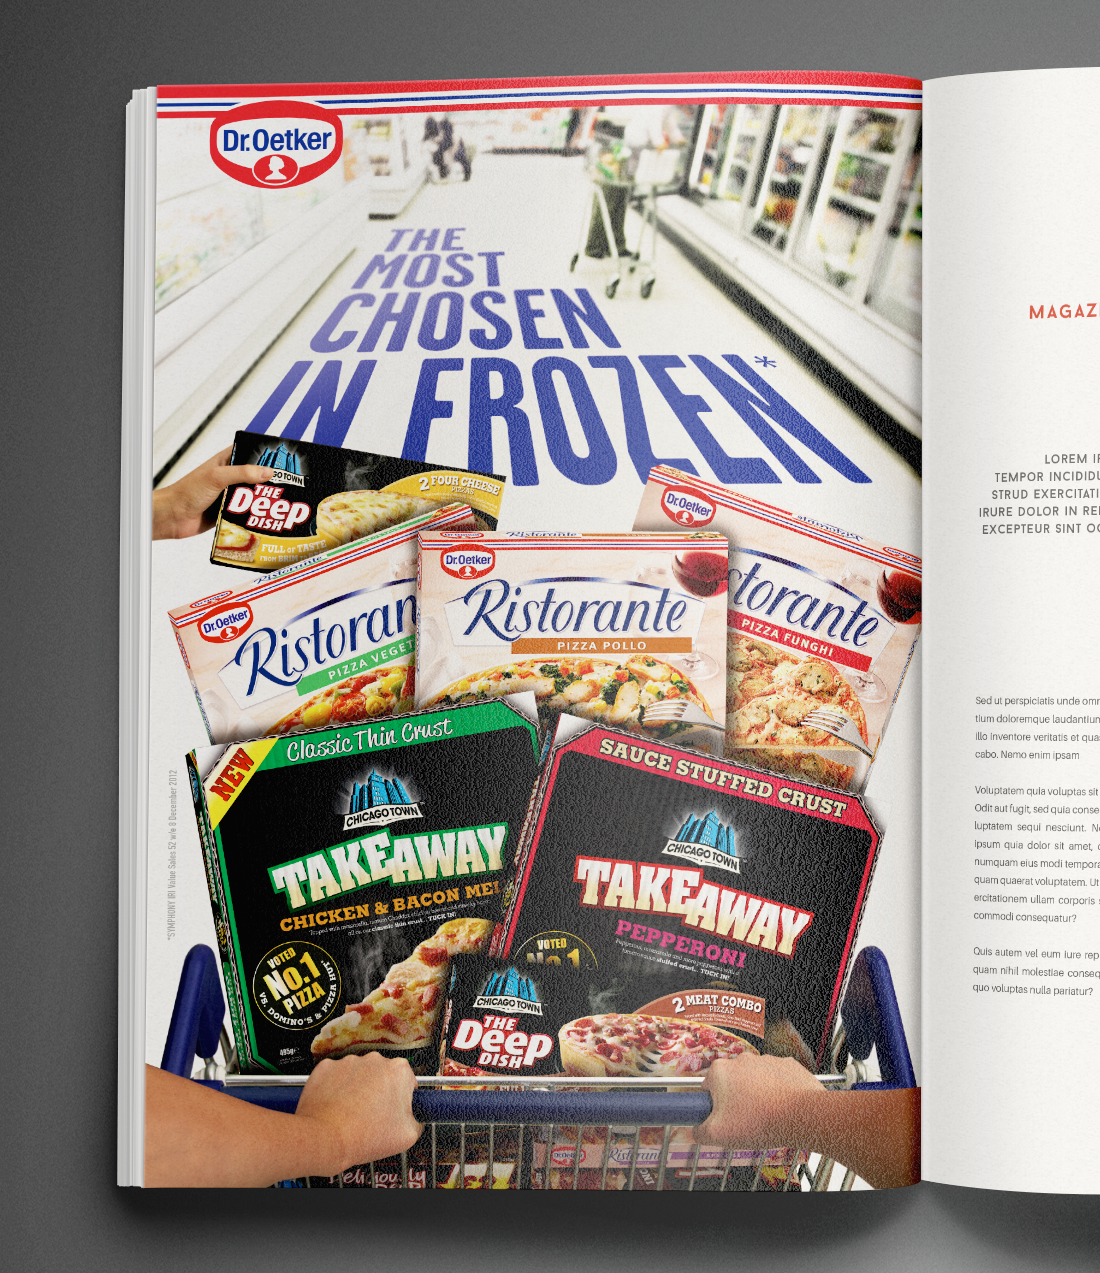 Dr Oetker most chosen in frozen ad